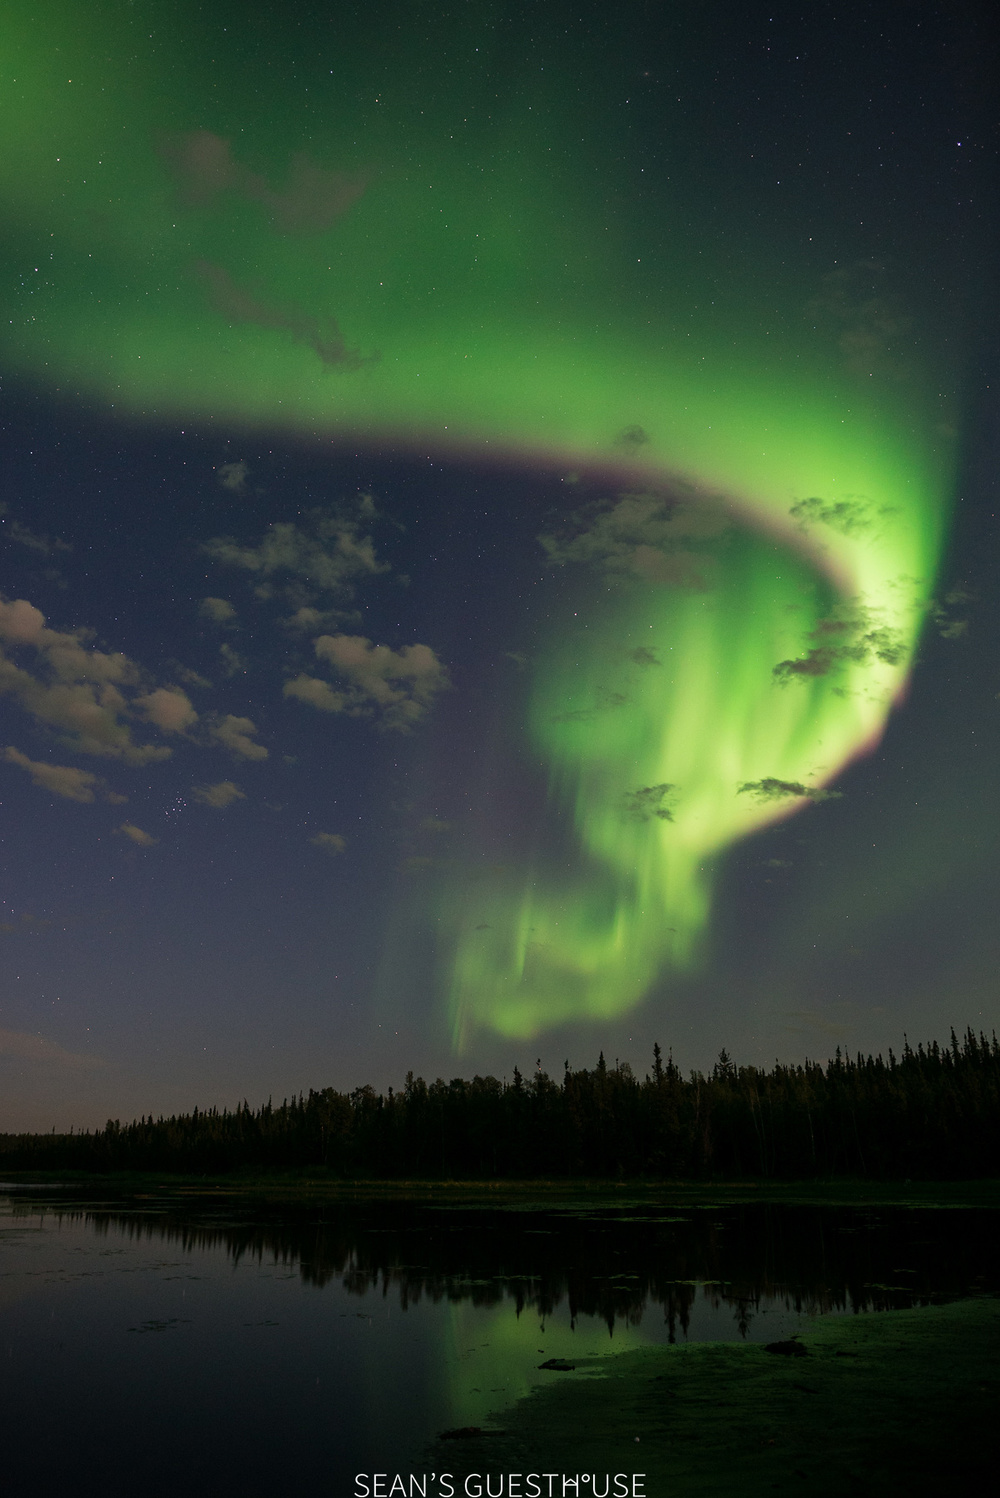 Sean's Guesthouse - Yellowknife Northern Lights Accommodation & Tours - 6.jpg